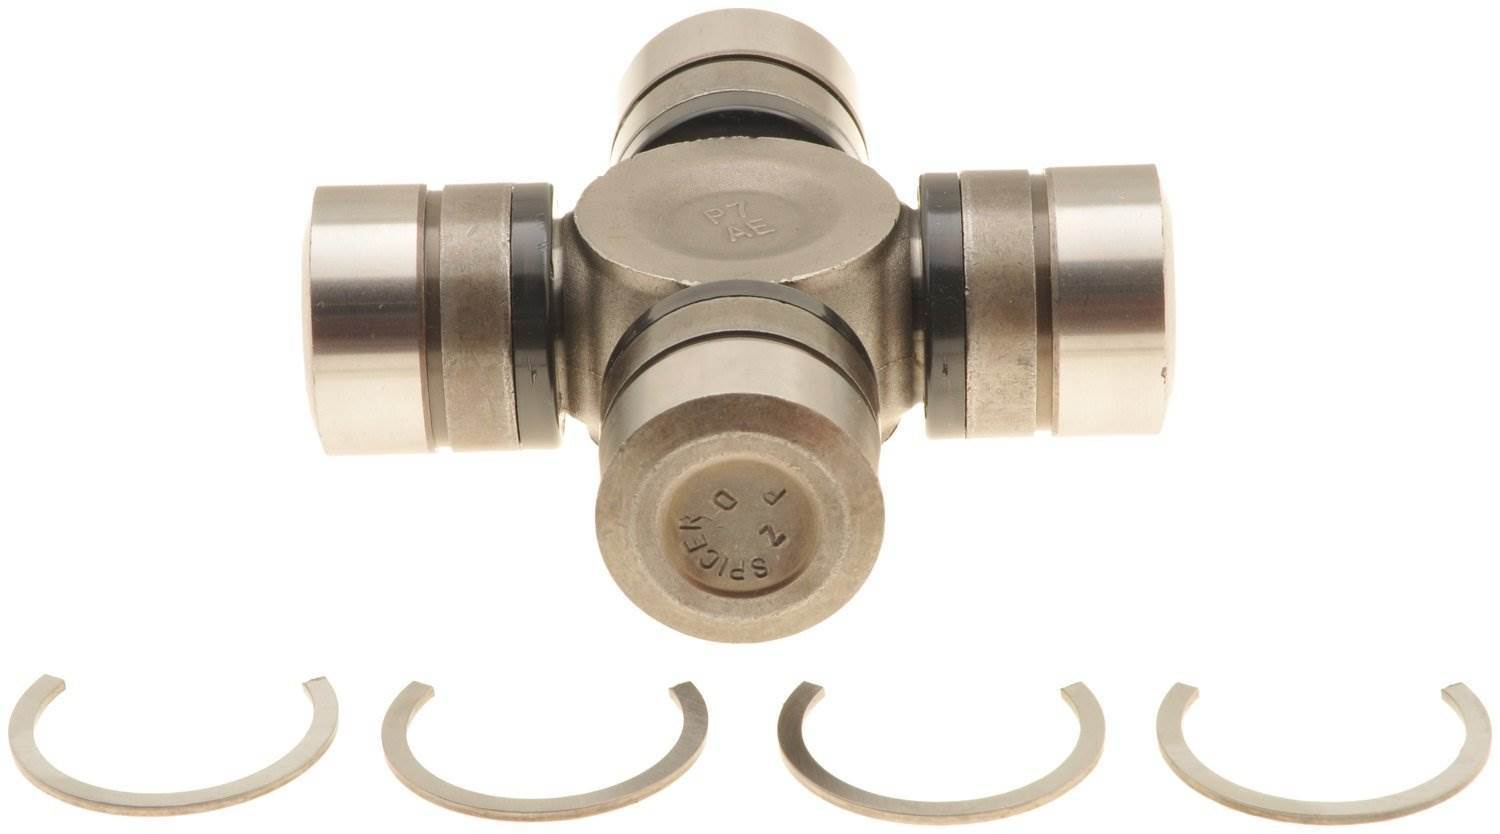 hight resolution of spl55 3x dana spicer front axle u joint ford 1999 2017 dodge 1994 2002